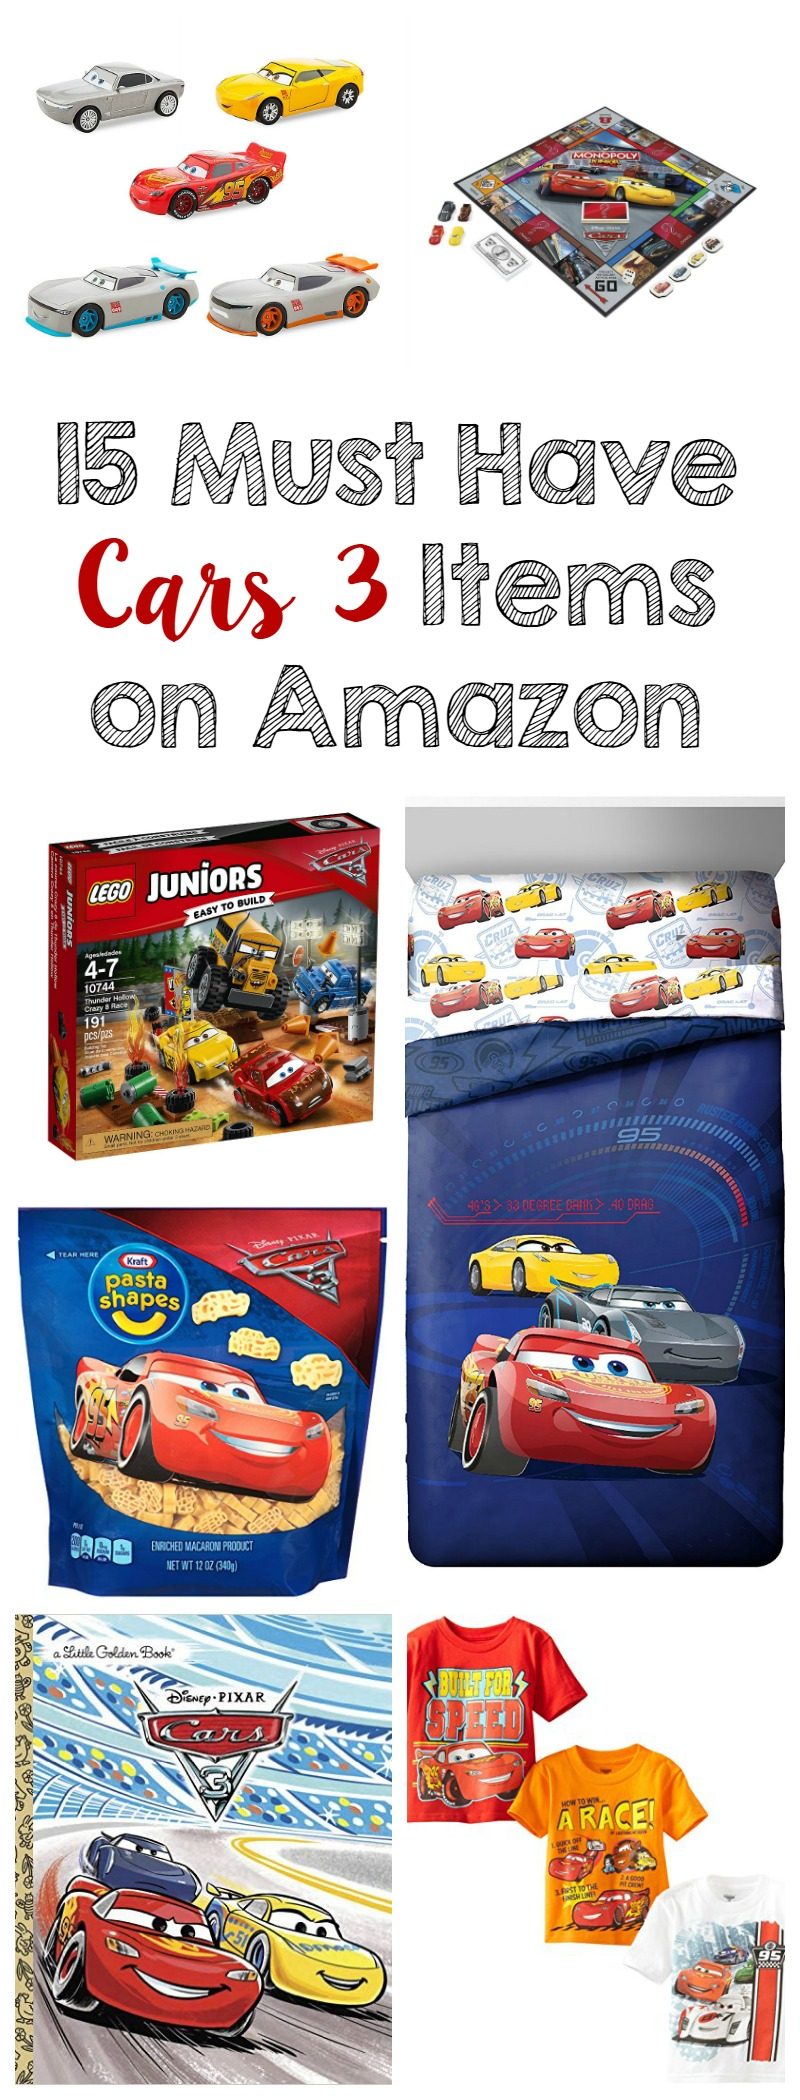 15 Must Have Cars 3 Items on Amazon // Life Anchored ad